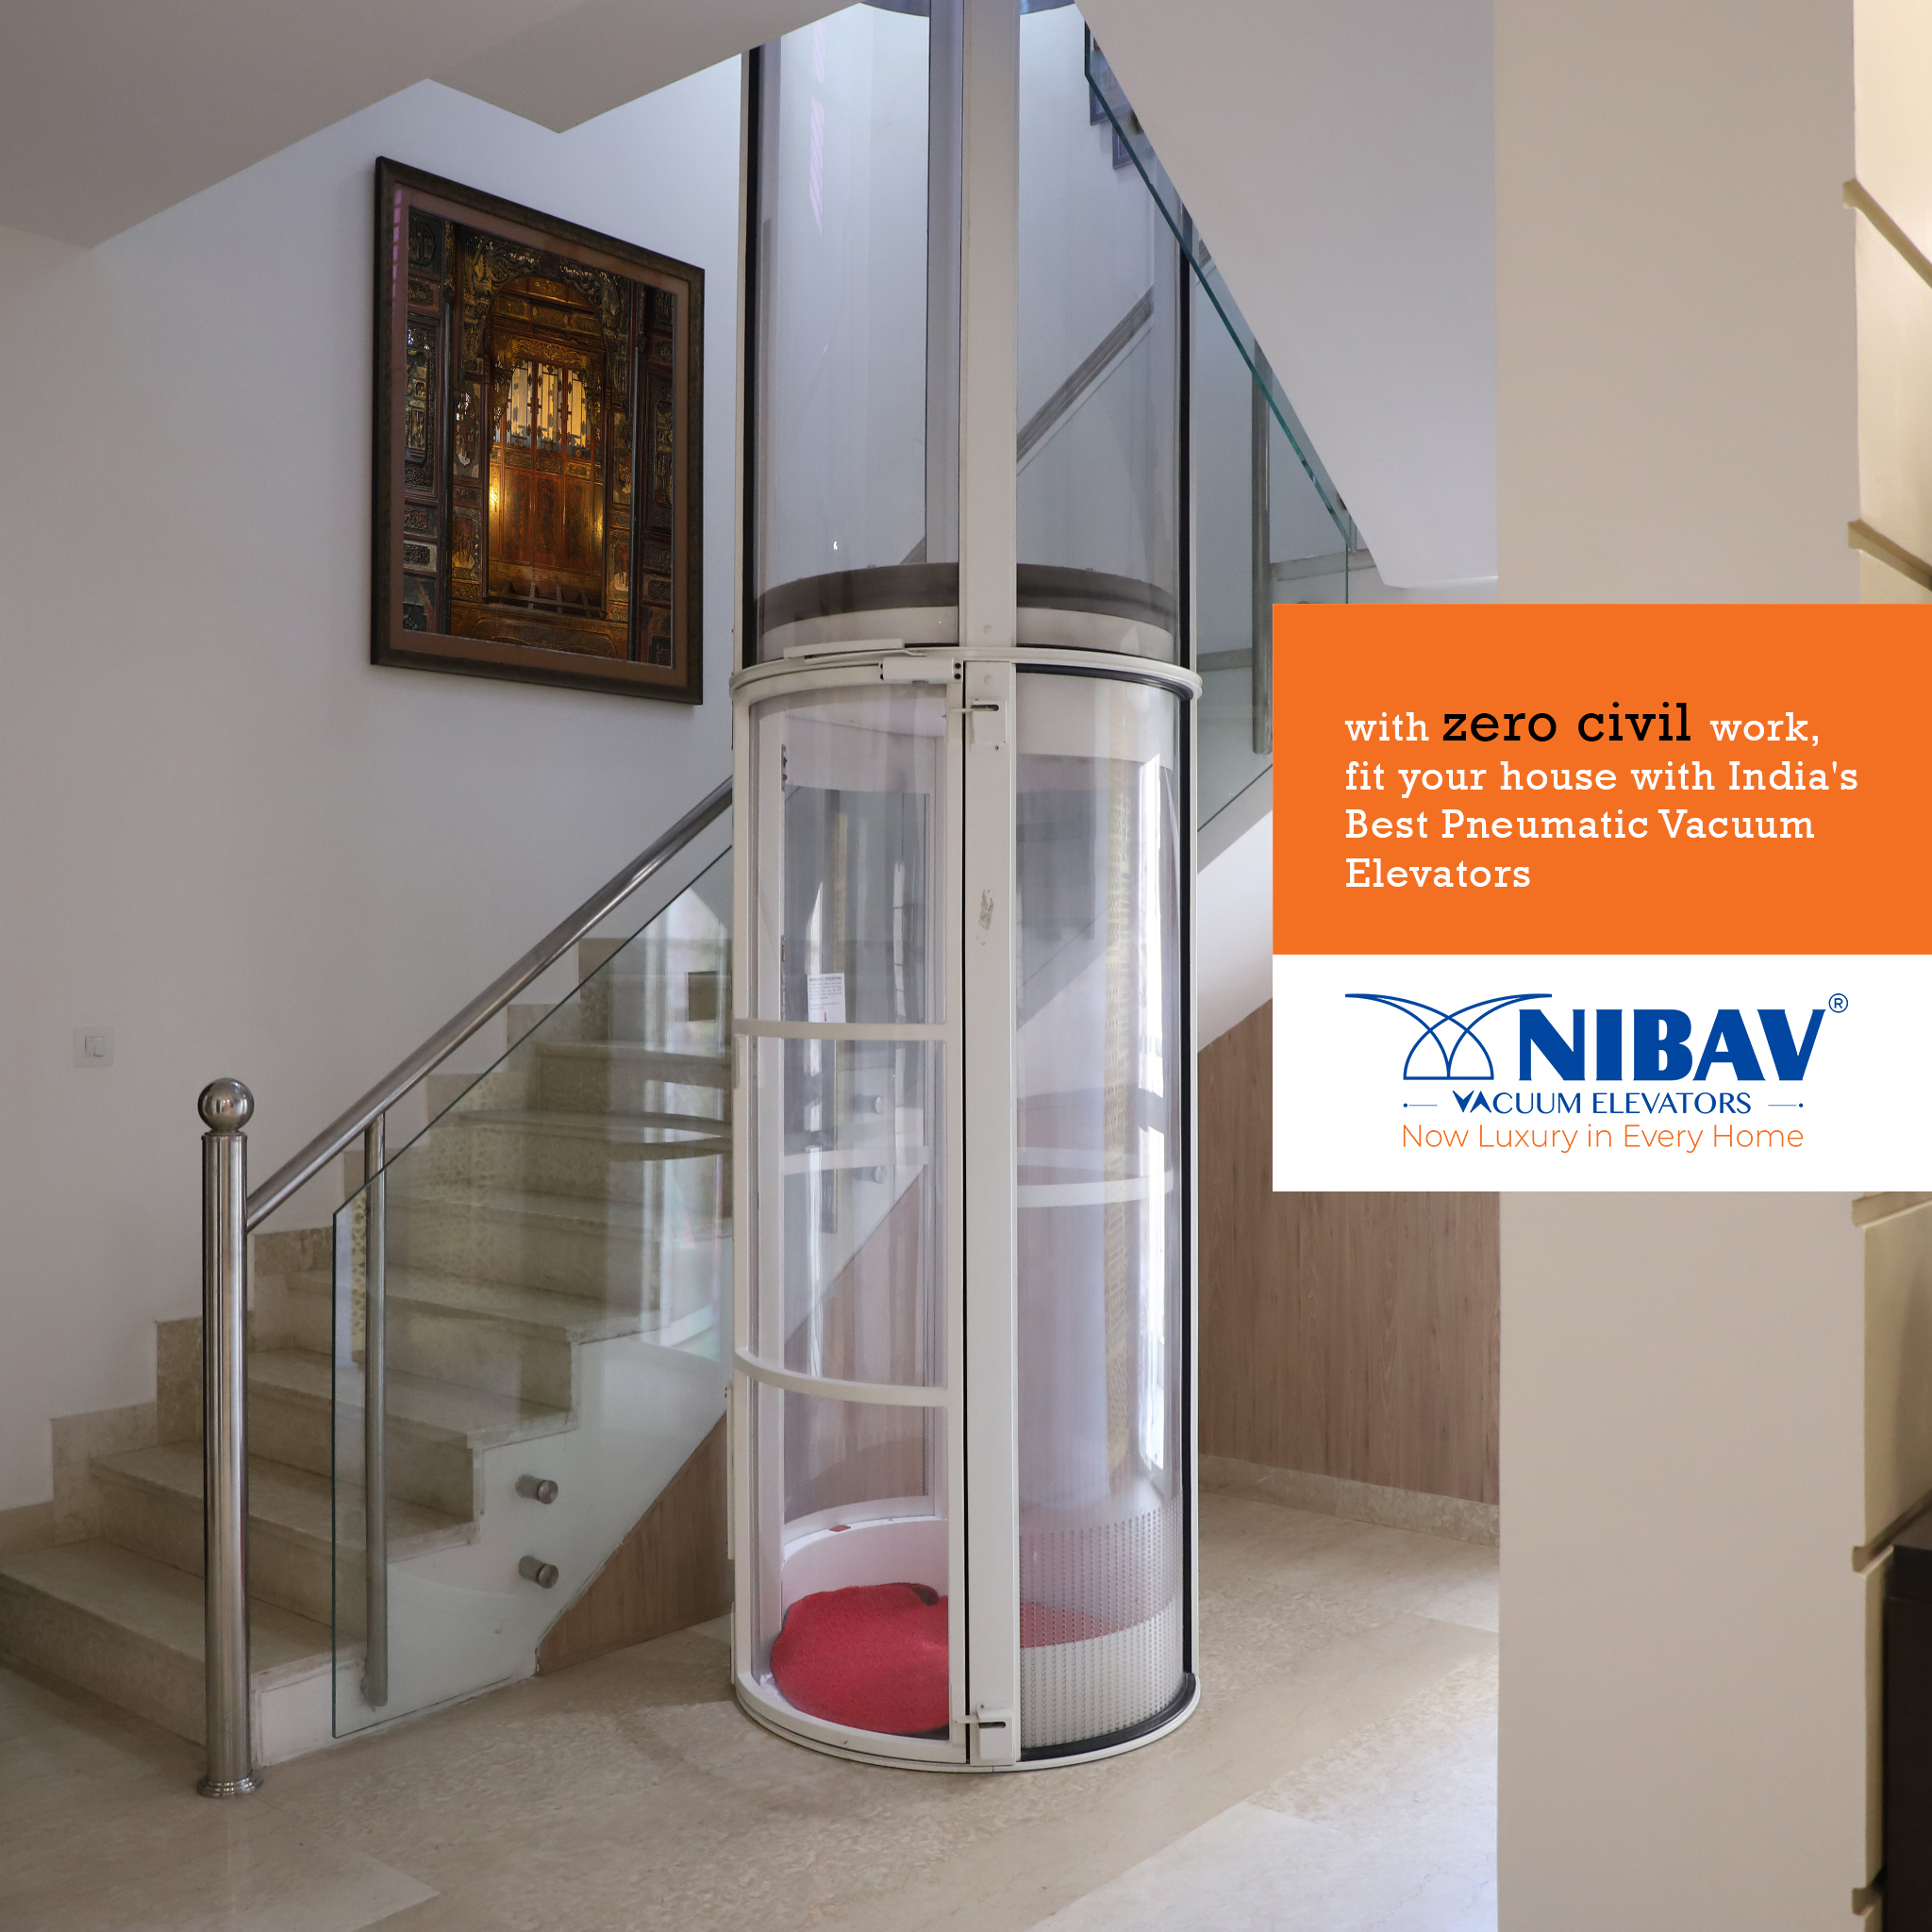 Nibav Lifts Now Offers Unique Unbreakable Glass Vacuum Elevators with Vastu Compliance to Homeowners in India 1